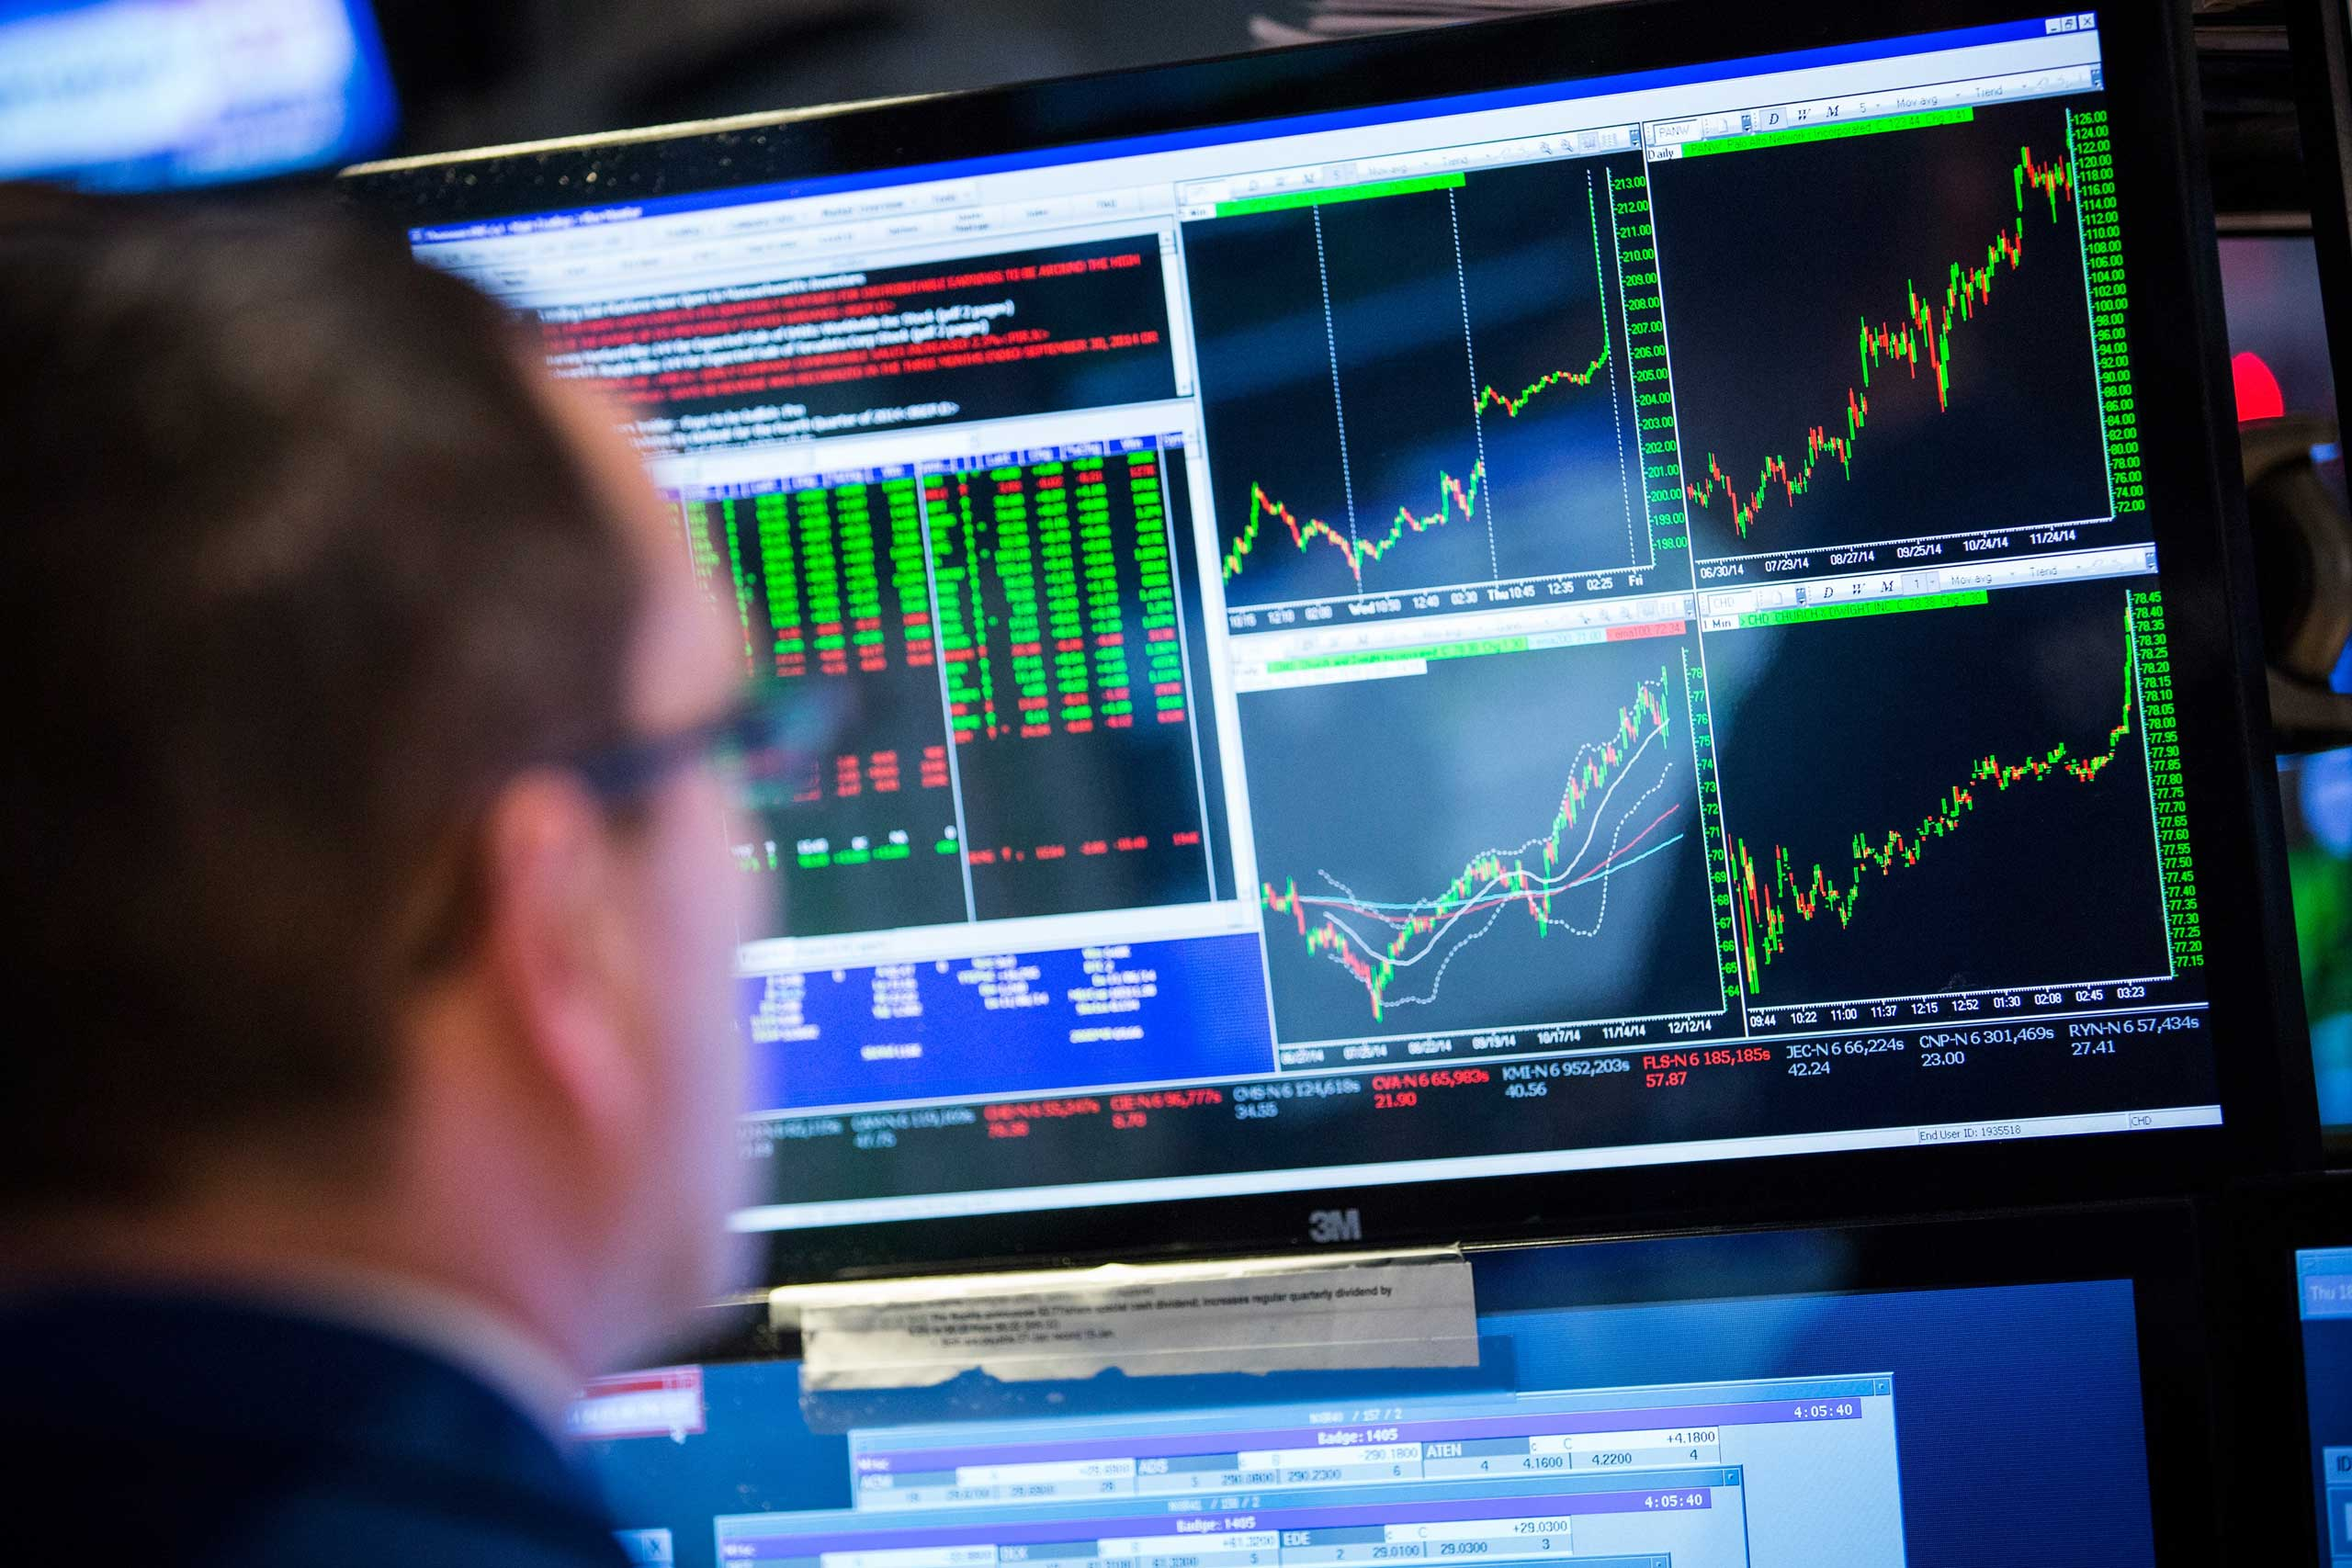 A trader works on the floor of the New York Stock Exchange in New York City during the afternoon of Dec. 18, 2014.